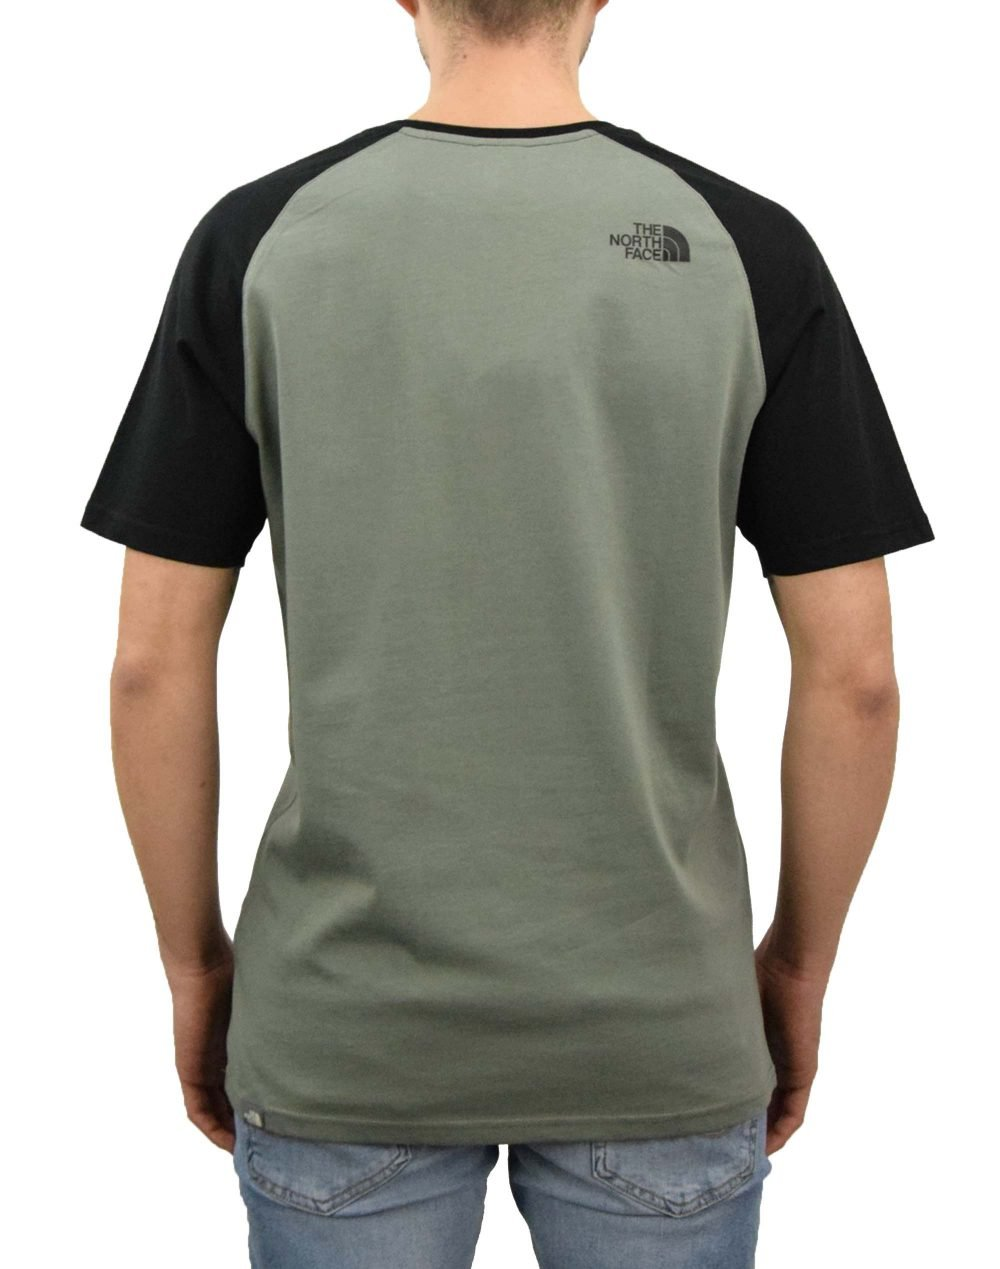 The North Face Raglan Easy Tee (NF0A37FVV381) Agave Green